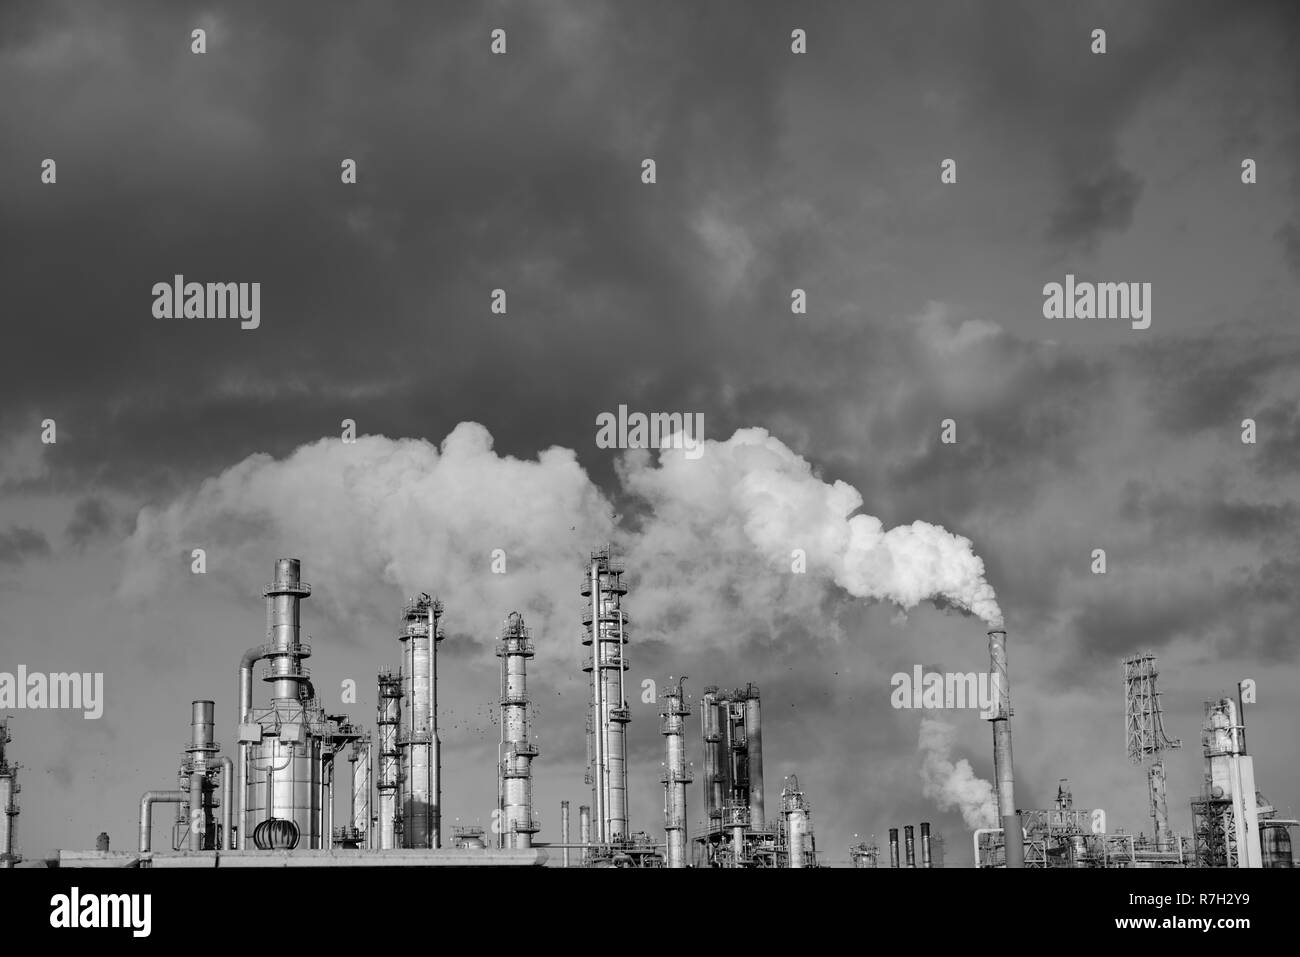 Smoke rising from a complex arrangement of metal towers and pipes at an industrial oil and gas refinery in Corpus Christi, Texas / USA. - Stock Image